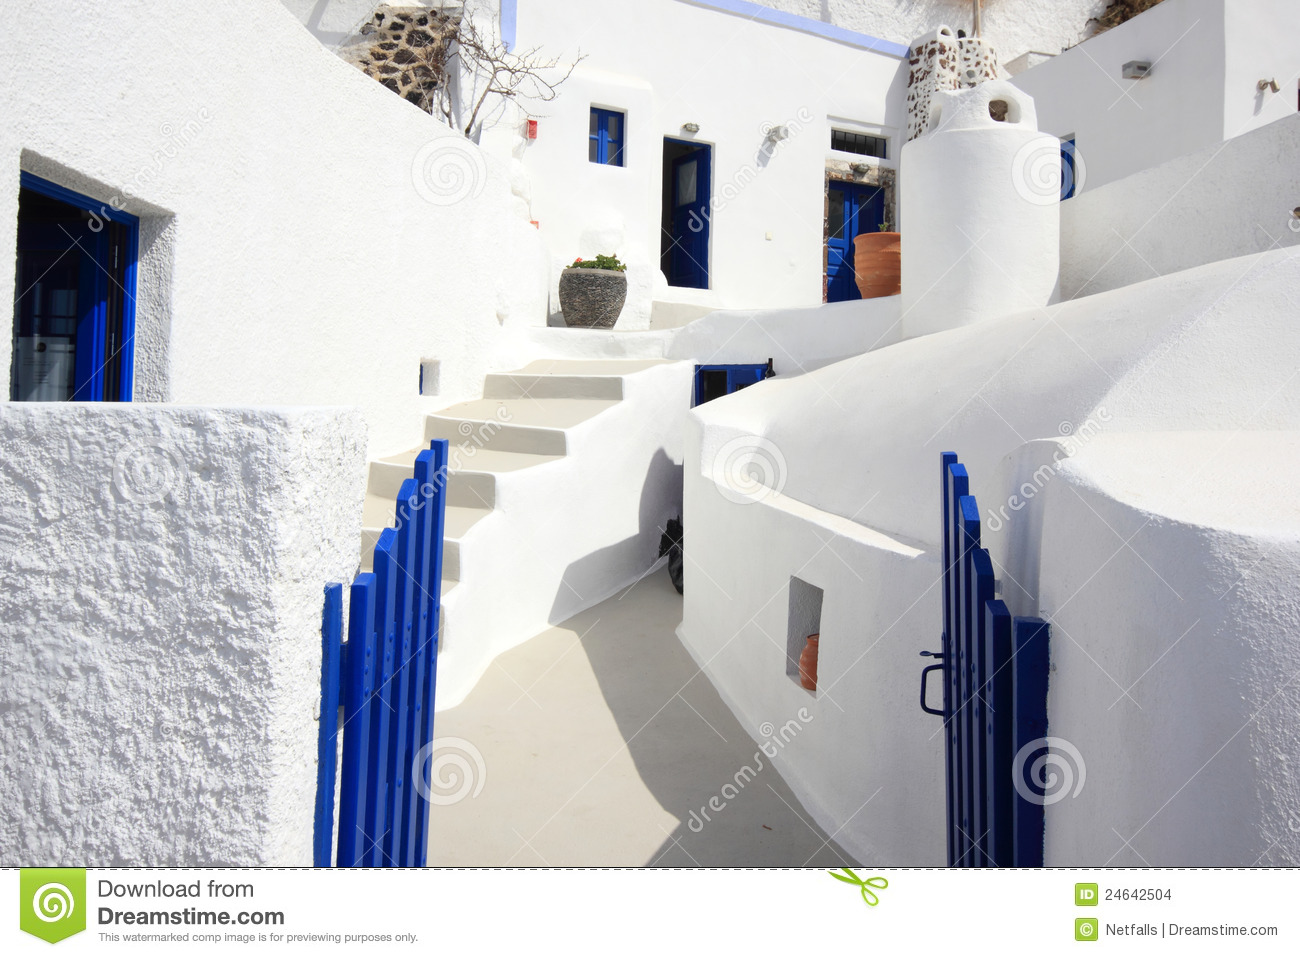 More similar stock images of ` The streets of Santorini `